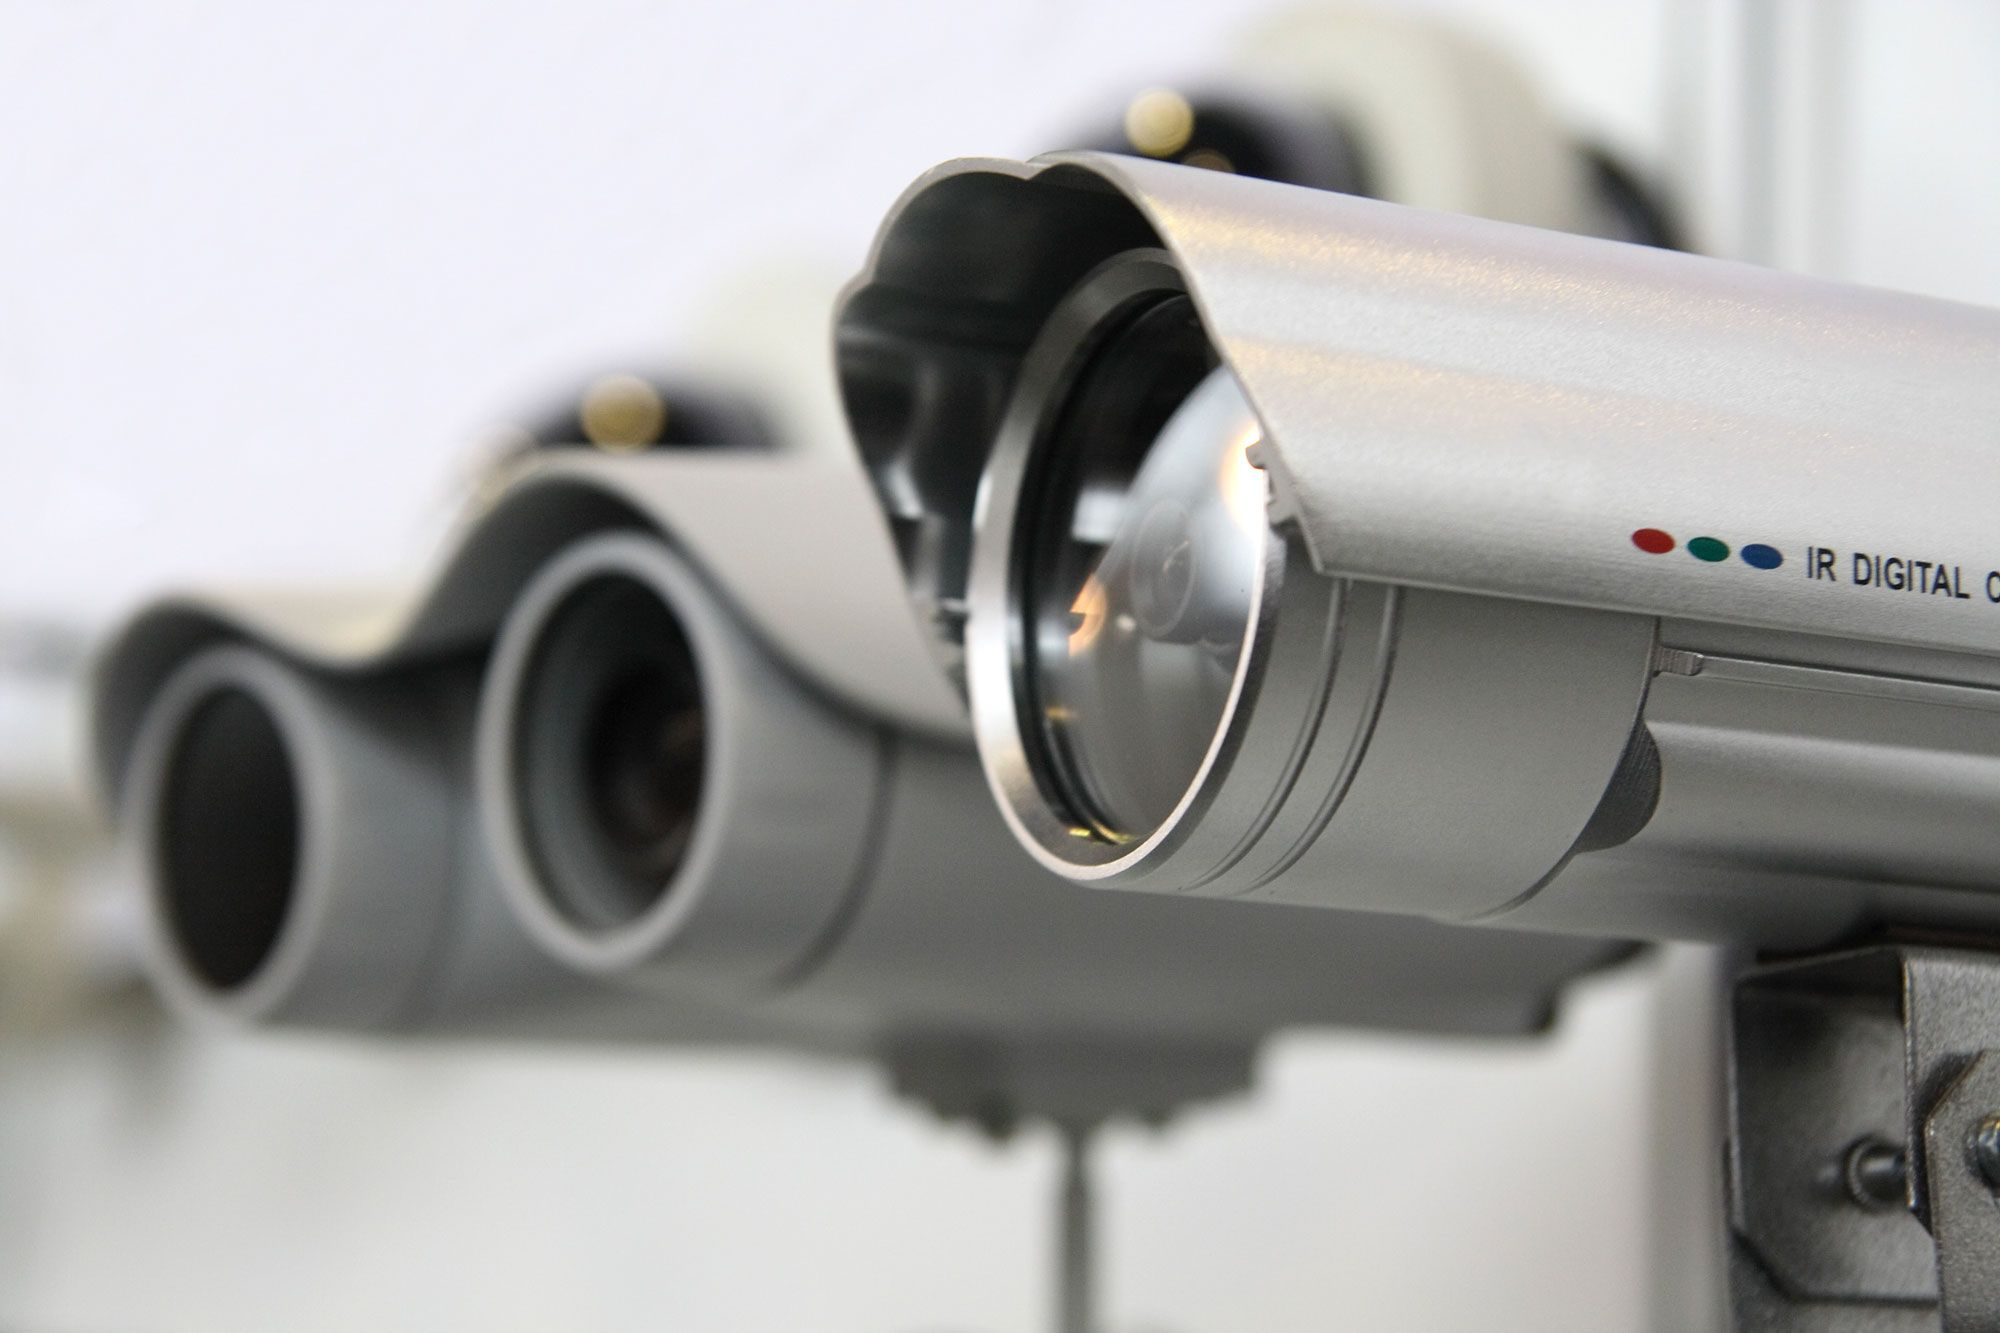 Choosing The Right Cctv For Your Home Wireless Home Security Best Security Cameras Home Security Systems